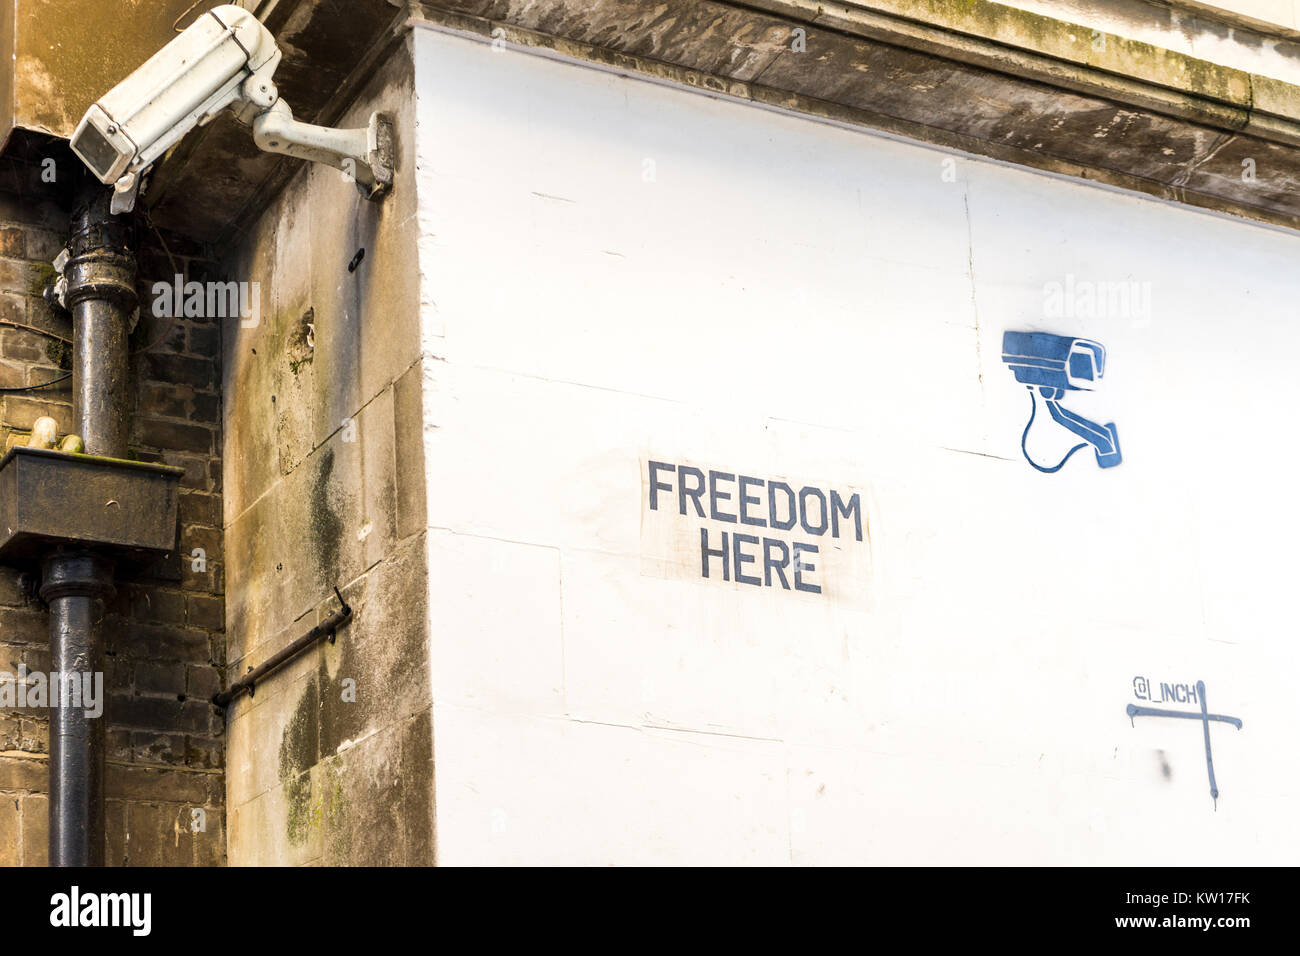 Stencil art graffiti 'Freedom' concept on a white wall with a surveillance camera next to it in Southampton city Stock Photo